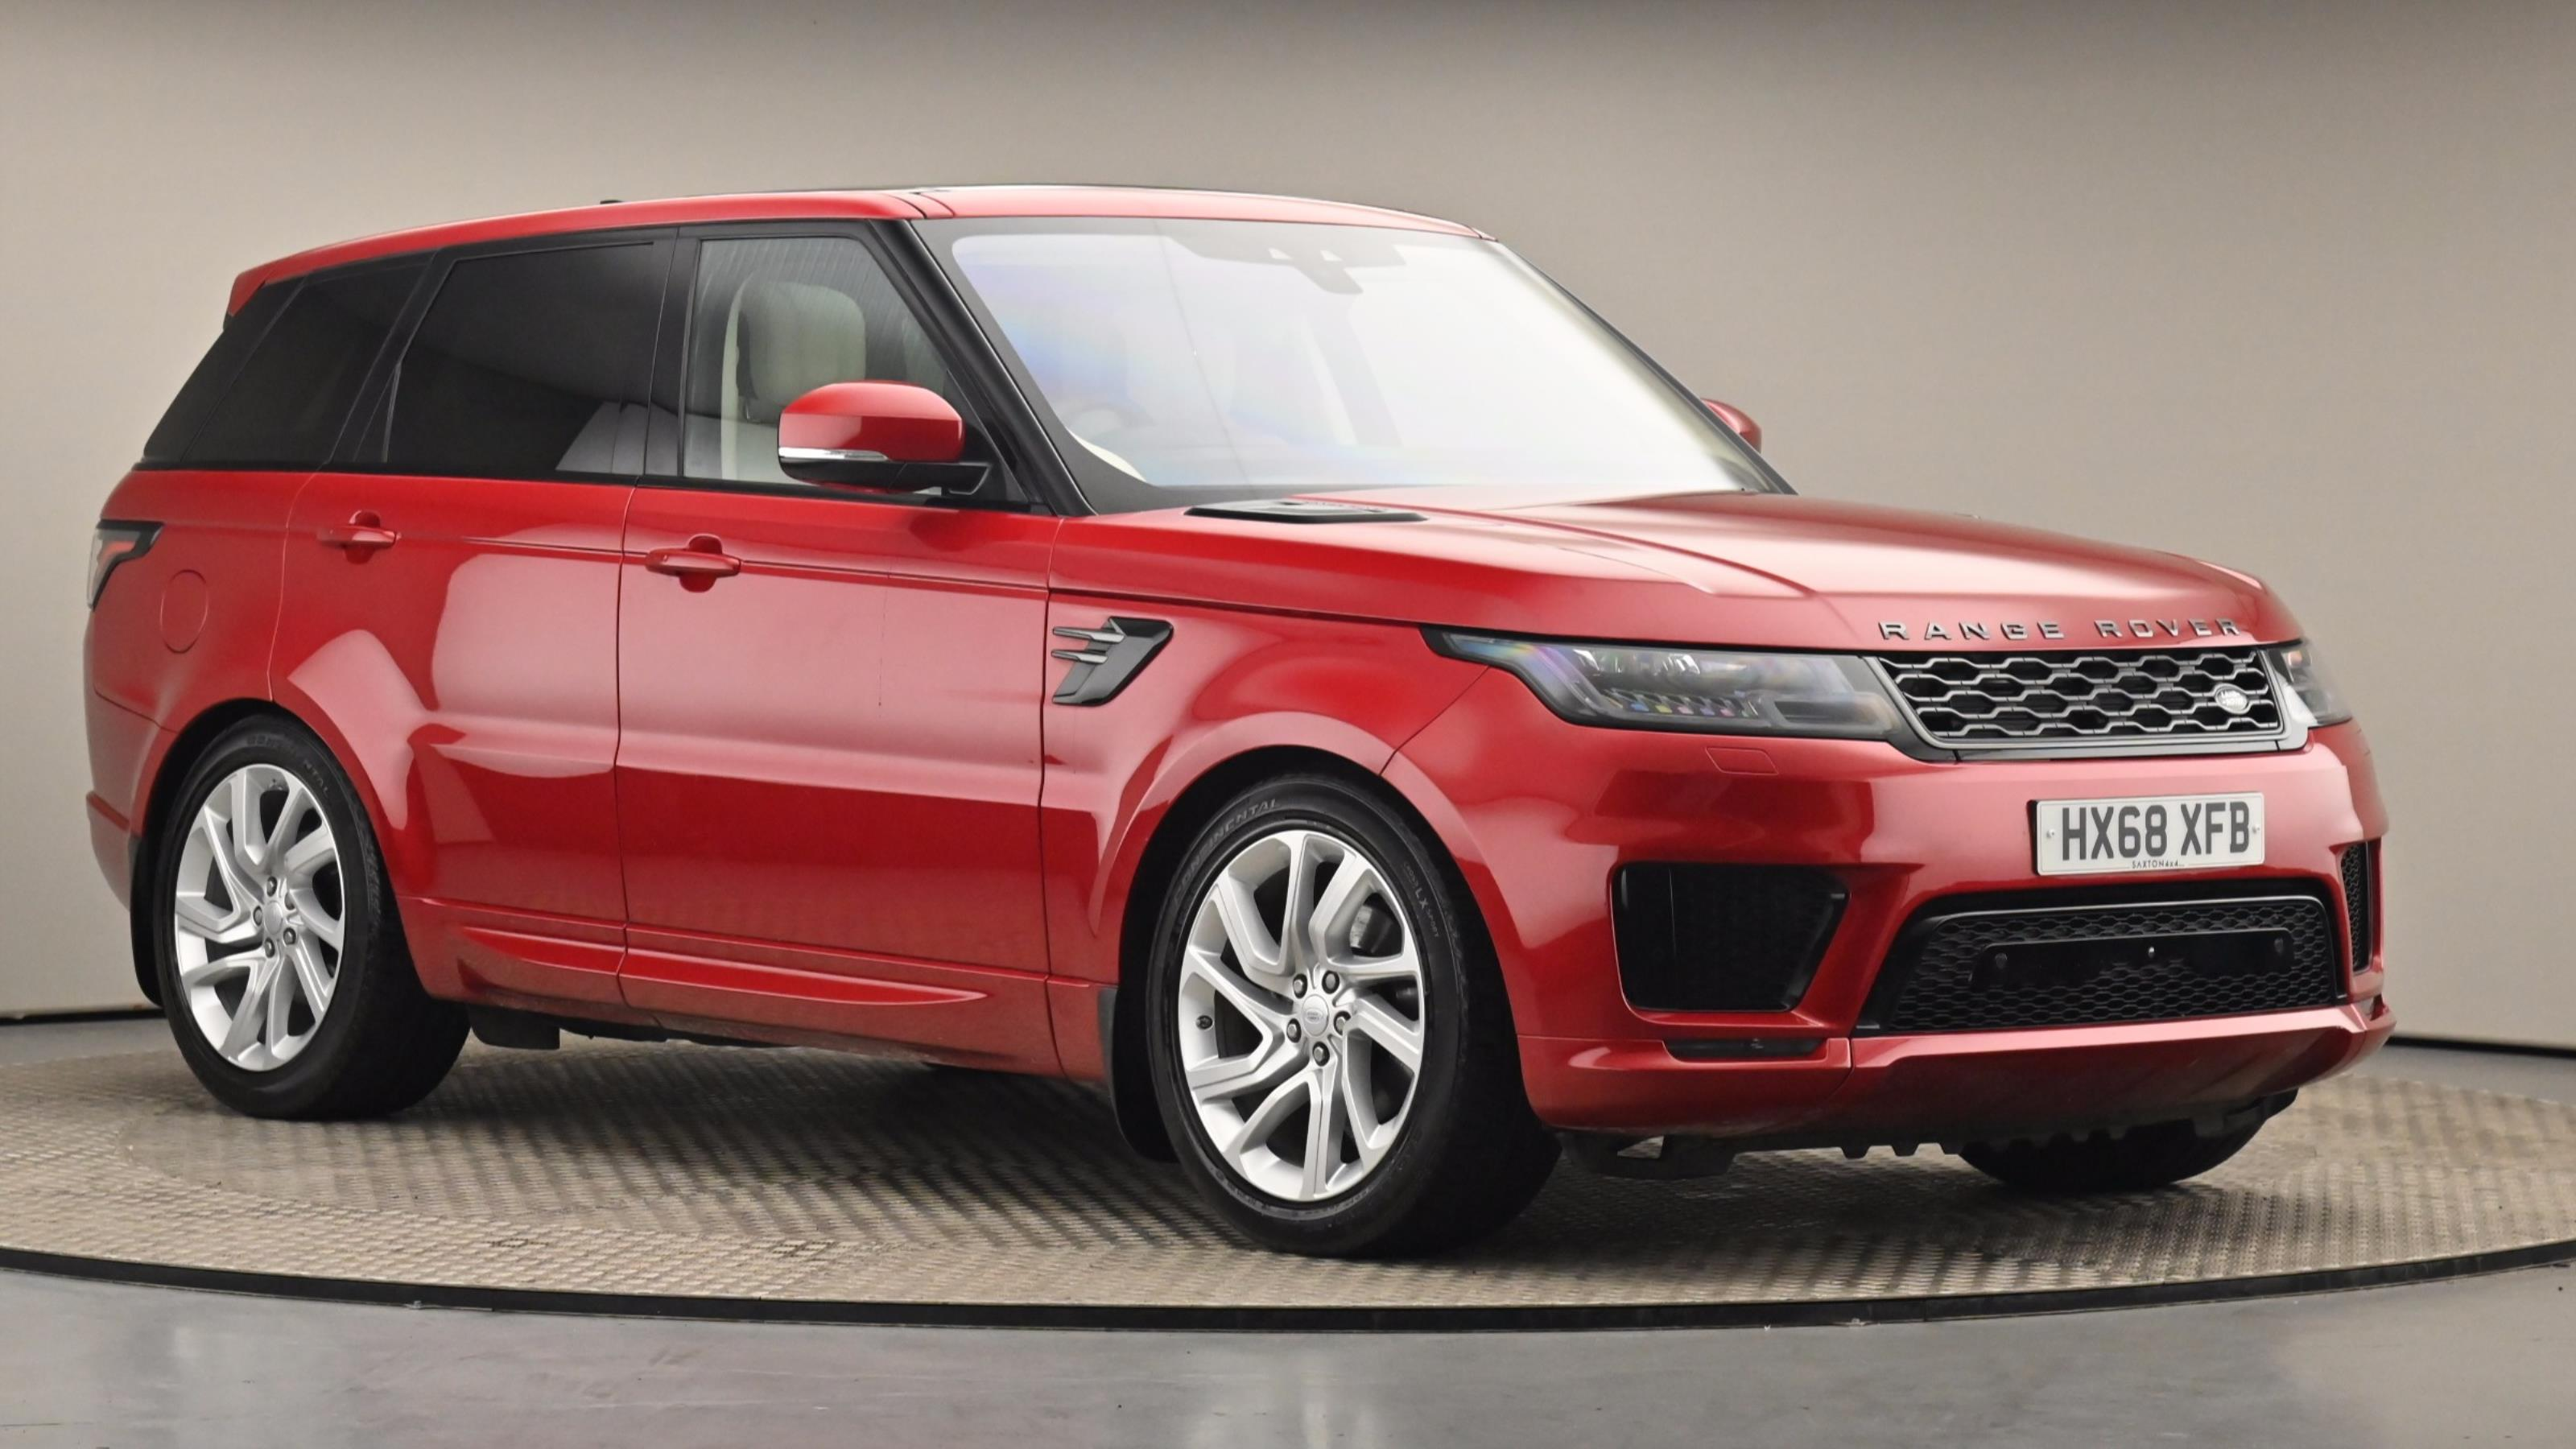 Used 2018 Land Rover RANGE ROVER SPORT 3.0 SDV6 HSE Dynamic 5dr Auto RED at Saxton4x4